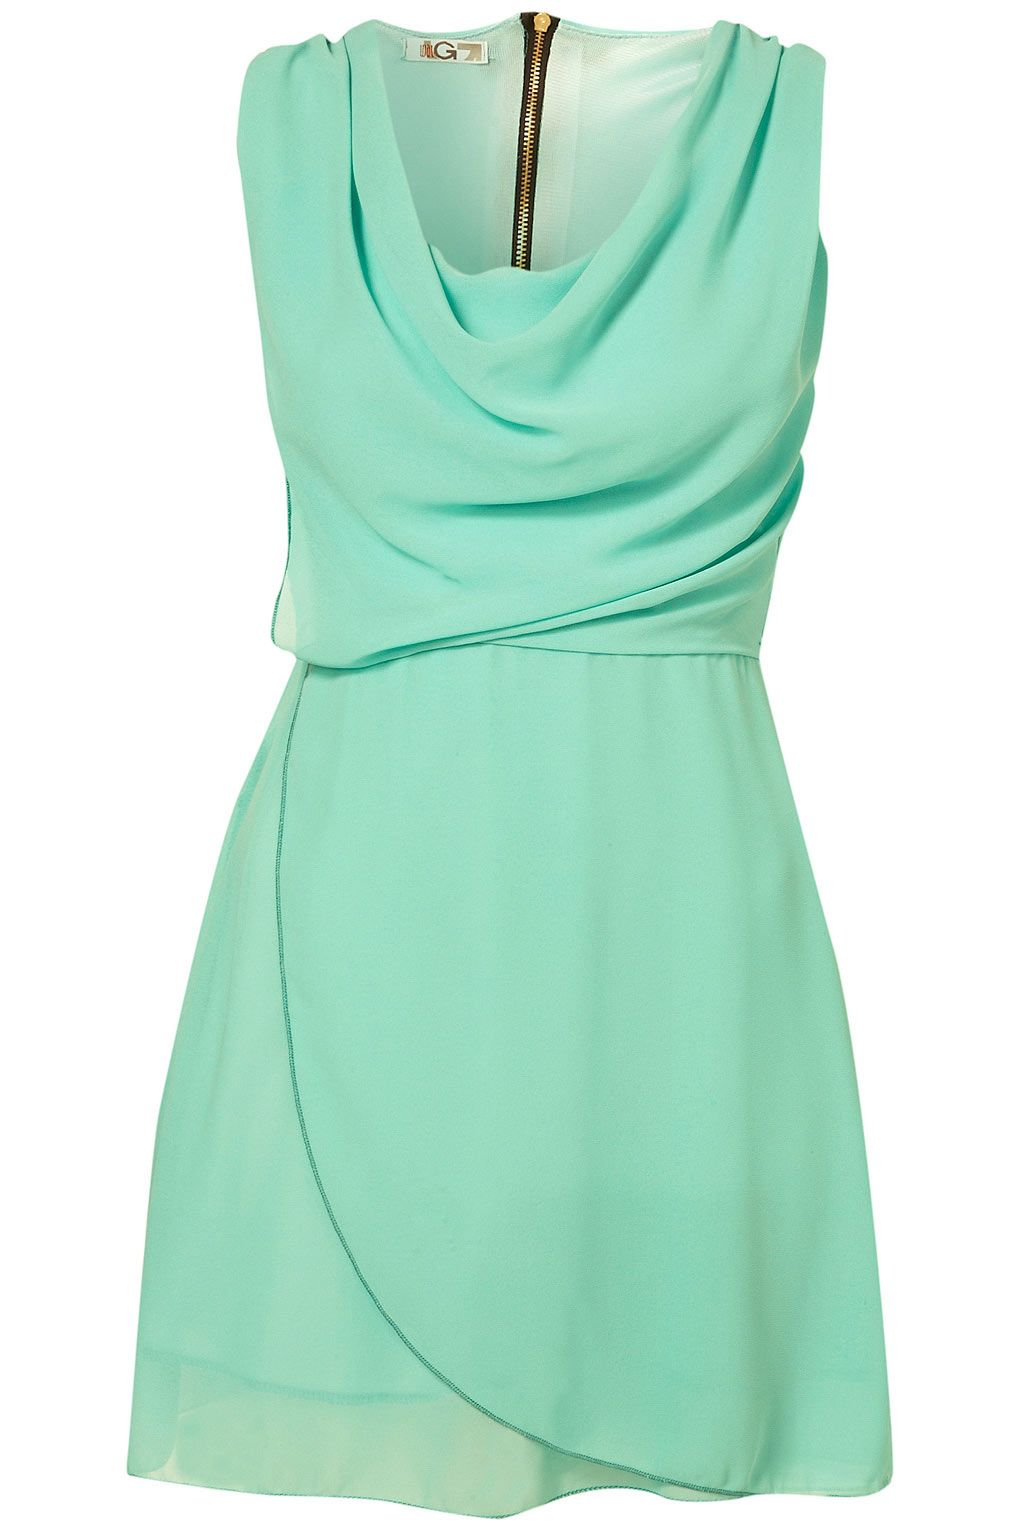 Heels for dark green dress  Simple and classy  Dresses  Pinterest  Classy Mint dress and Clothes